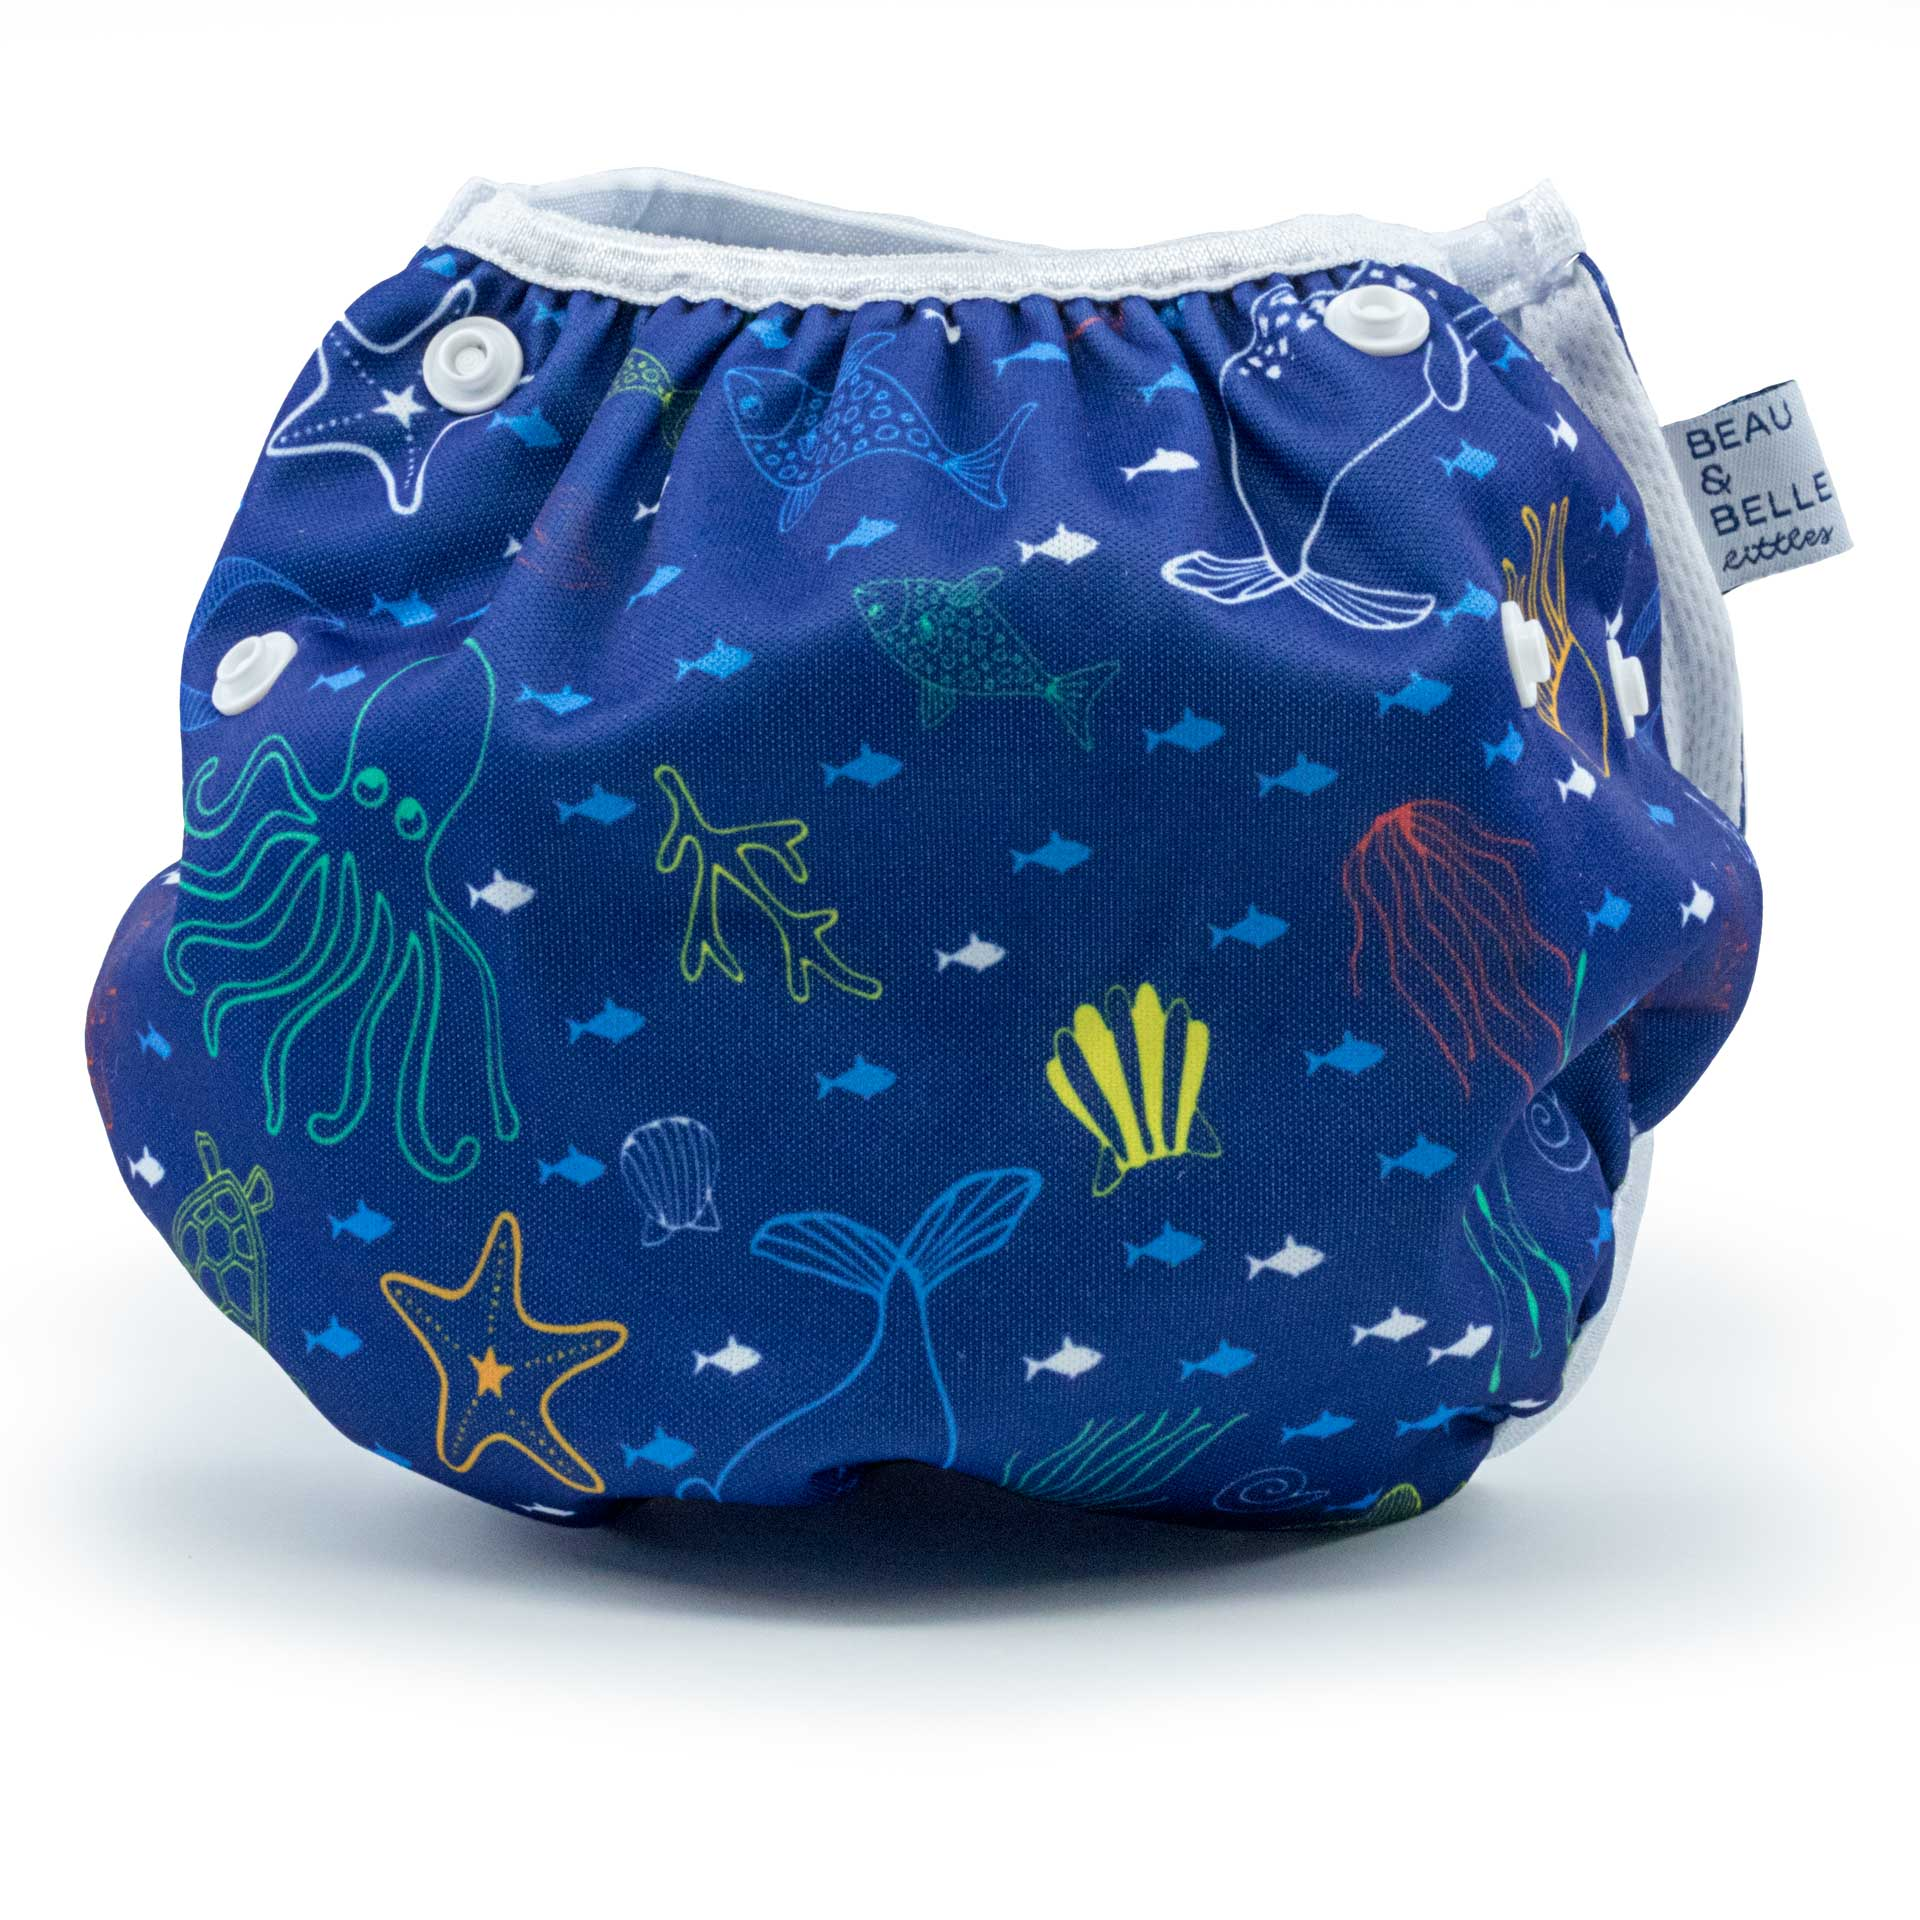 Beau and Belle Littles Swim Diaper, Regular Size, dark blue with outlines of sea creatures, Sea Friends print, back view